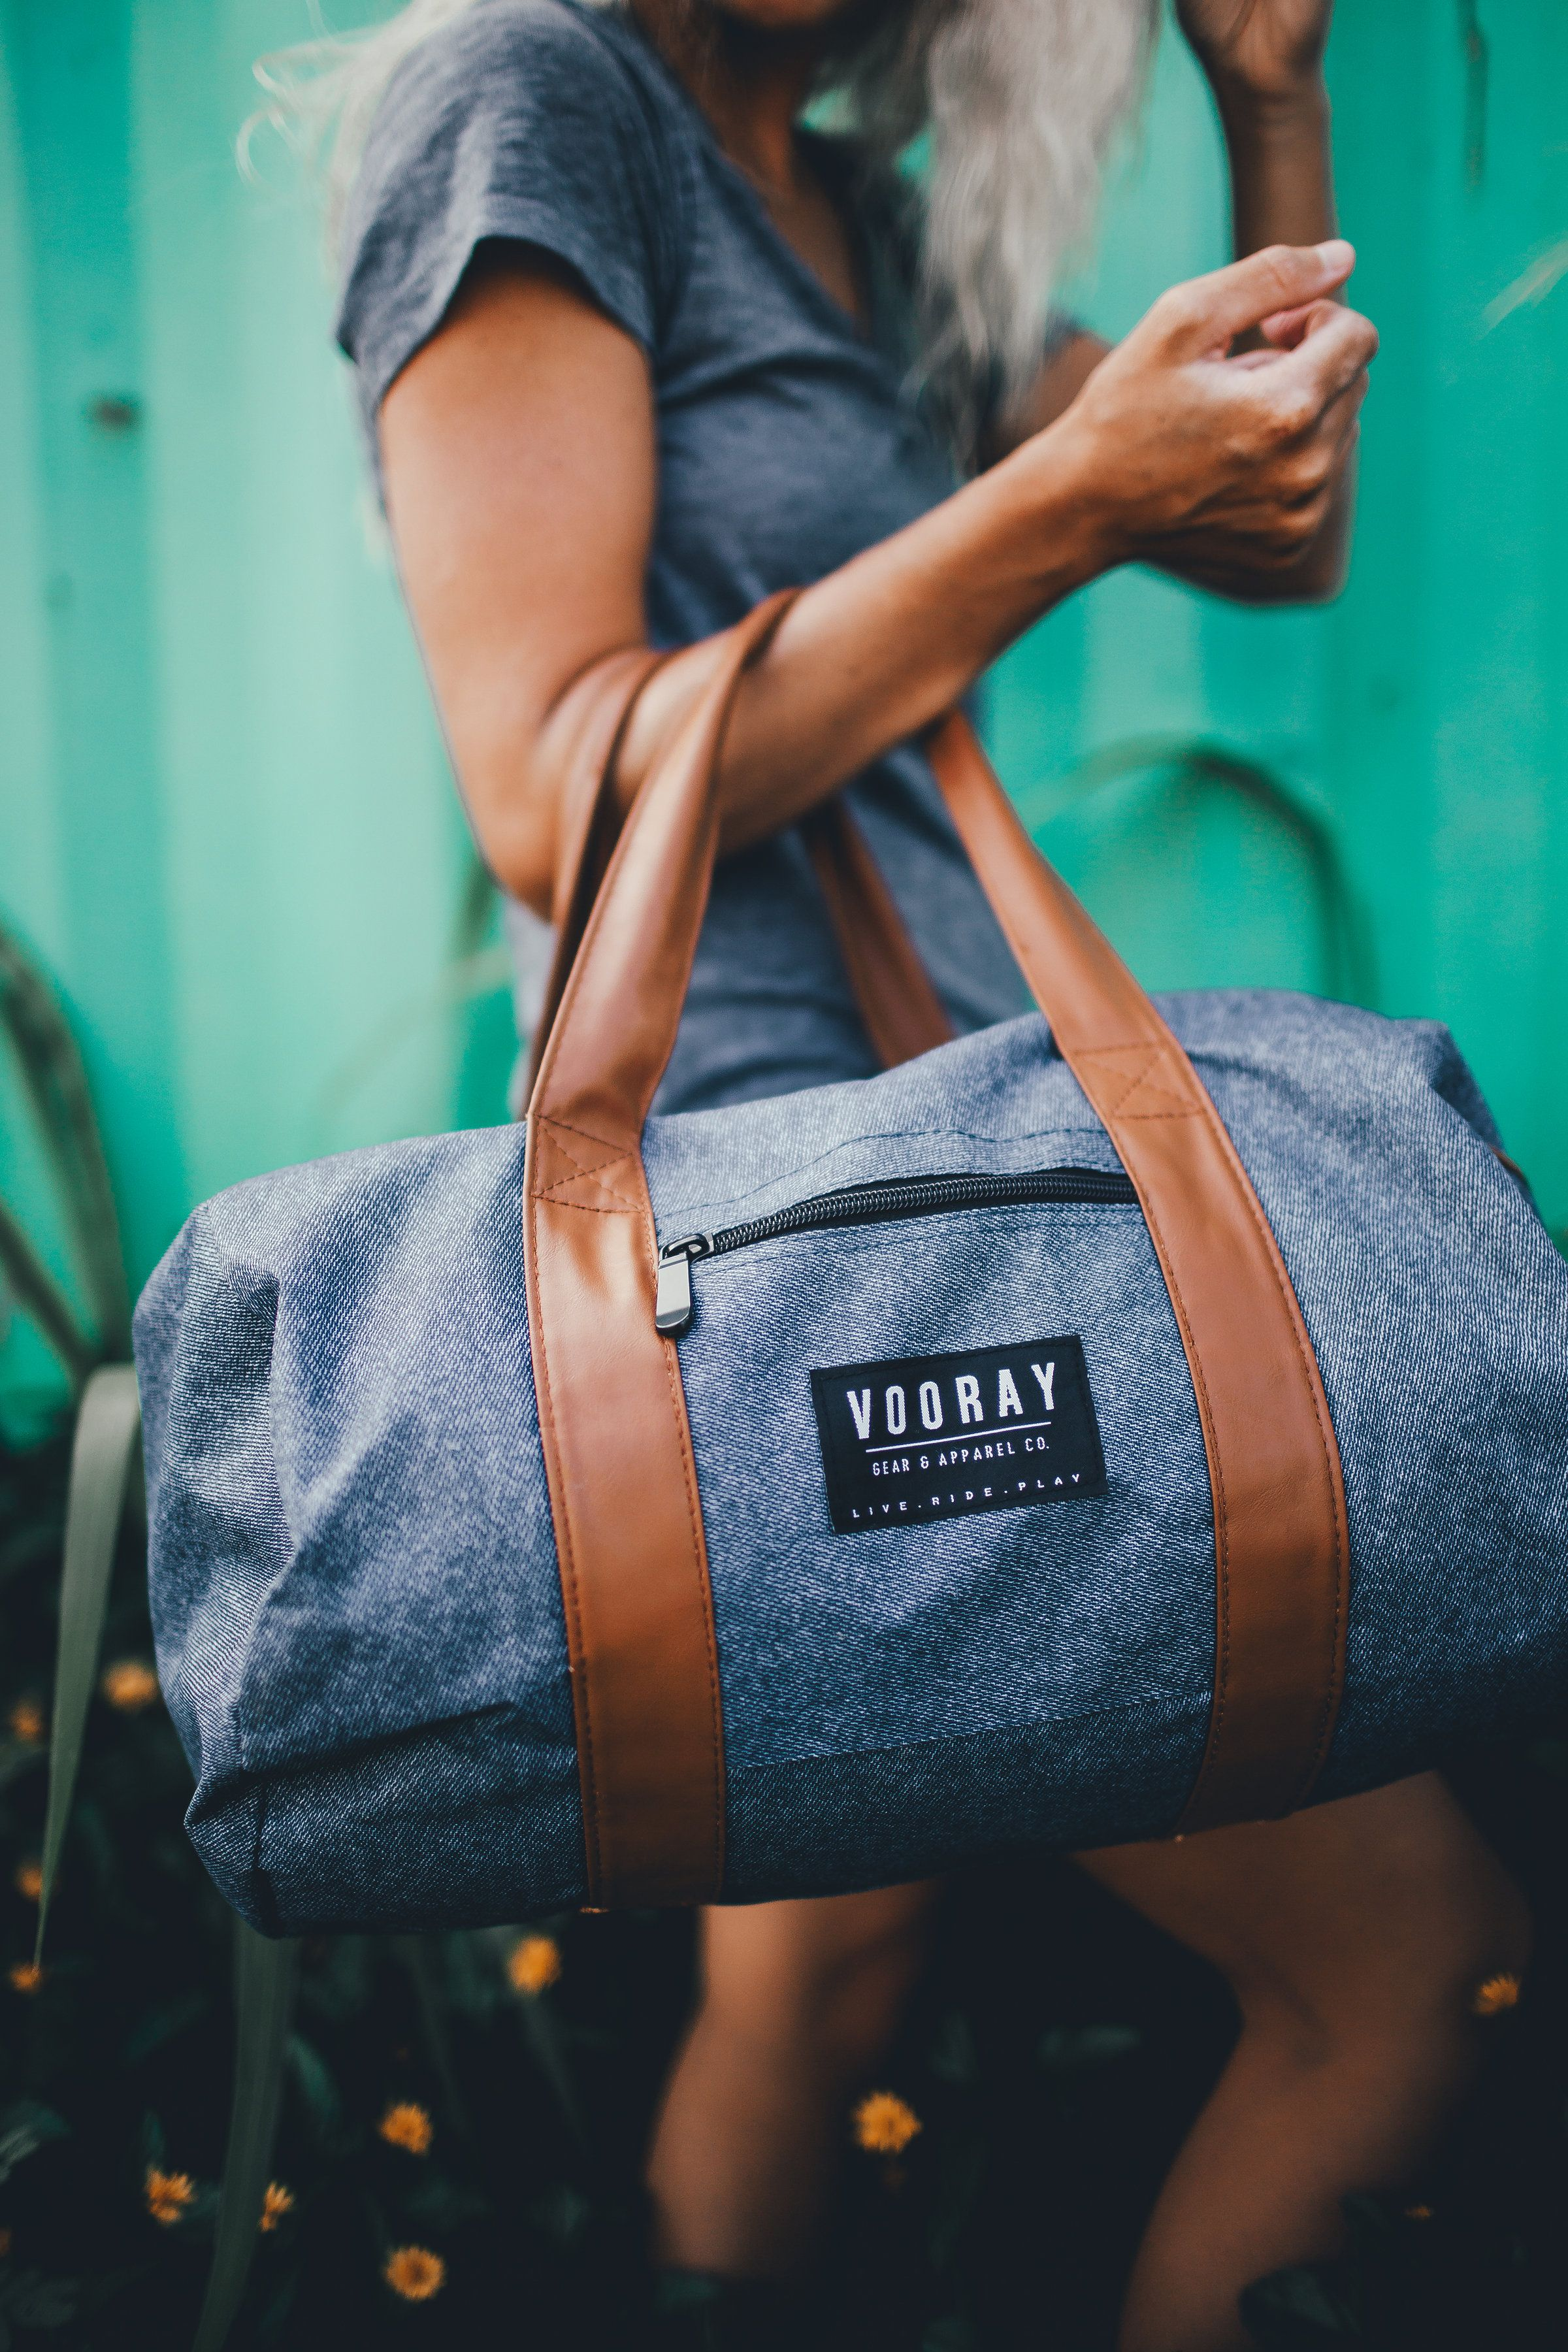 342bf06c9d46 Fitness on the go starts here. The Roadie Gym Duffel shown in Heather Blue.  Buy your new favorite gym bag today at Vooray for only  29.99.